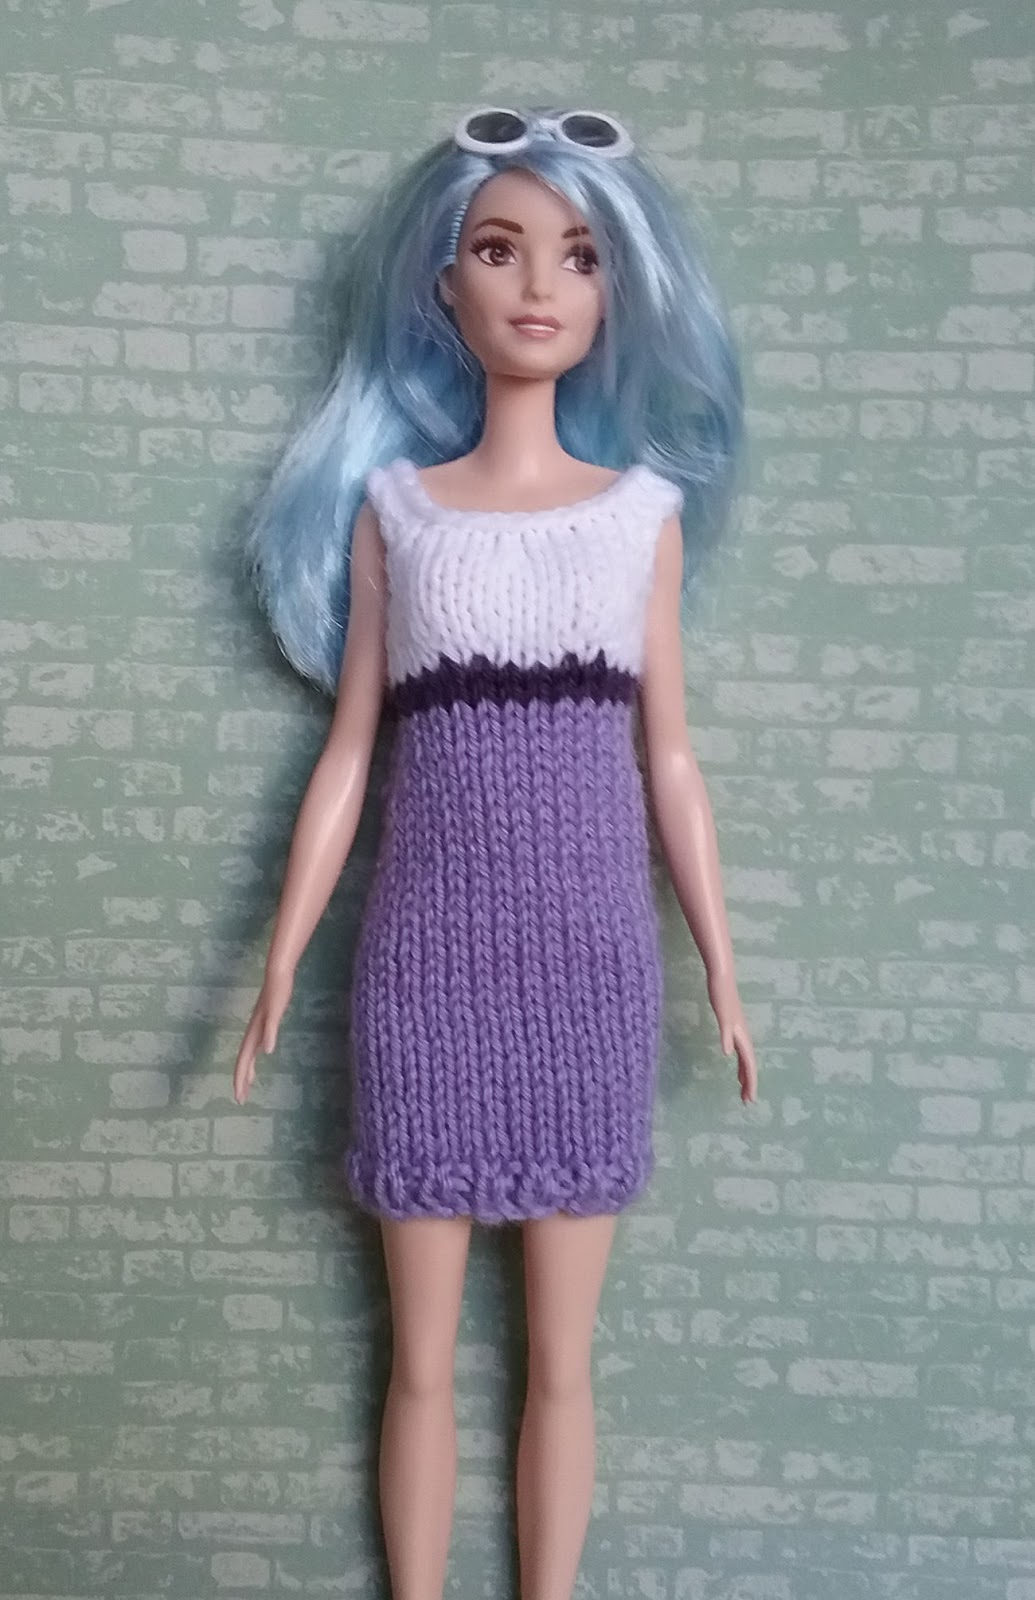 Linmary Knits: Curvy and Tall Barbie Fashionista knitted dresses